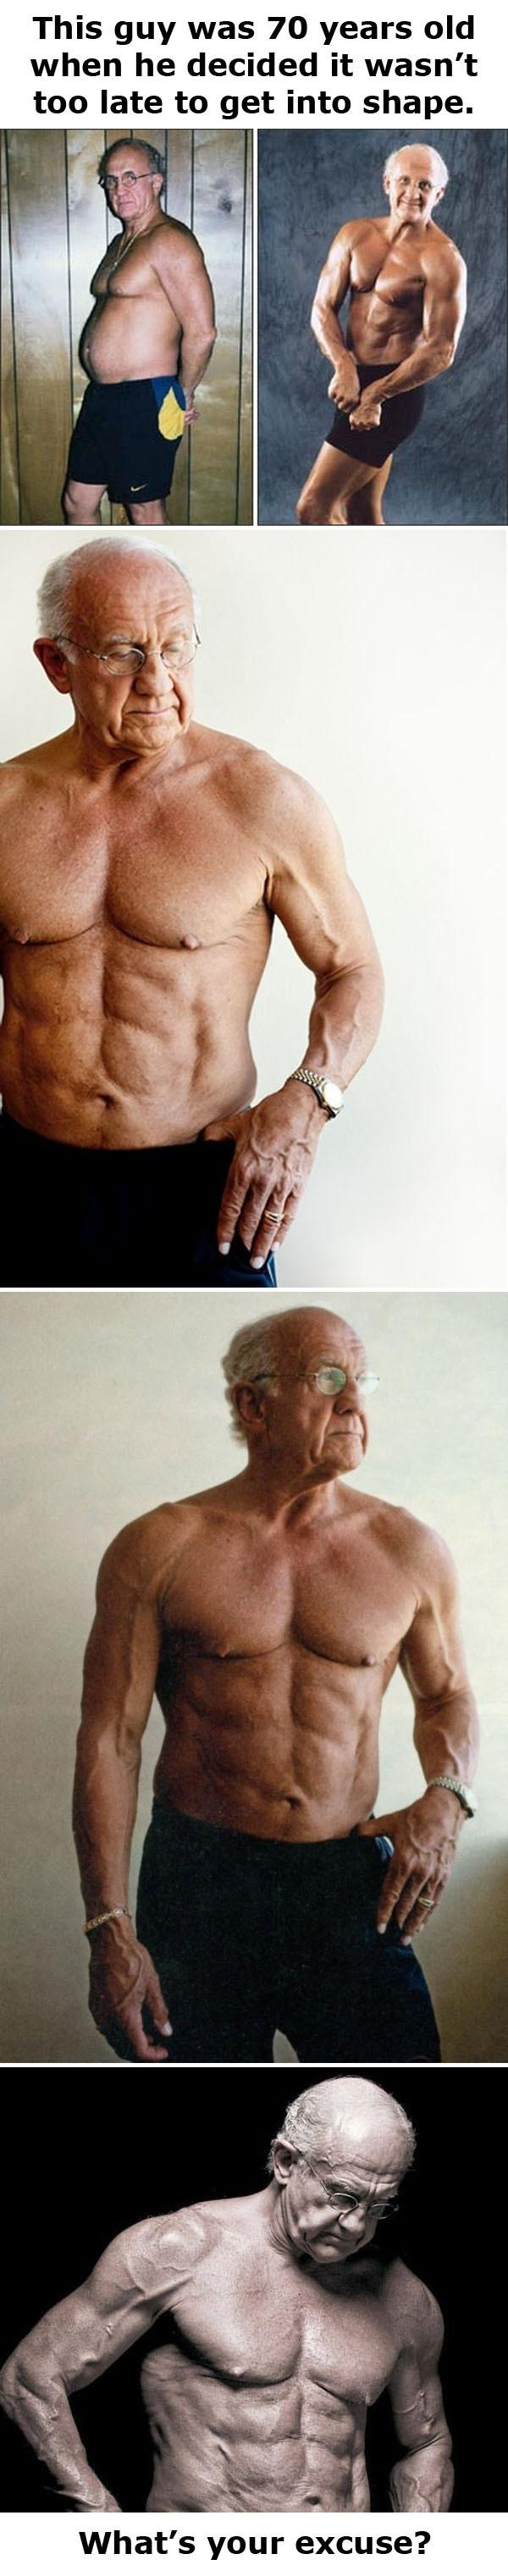 Old guy... wait, what?!